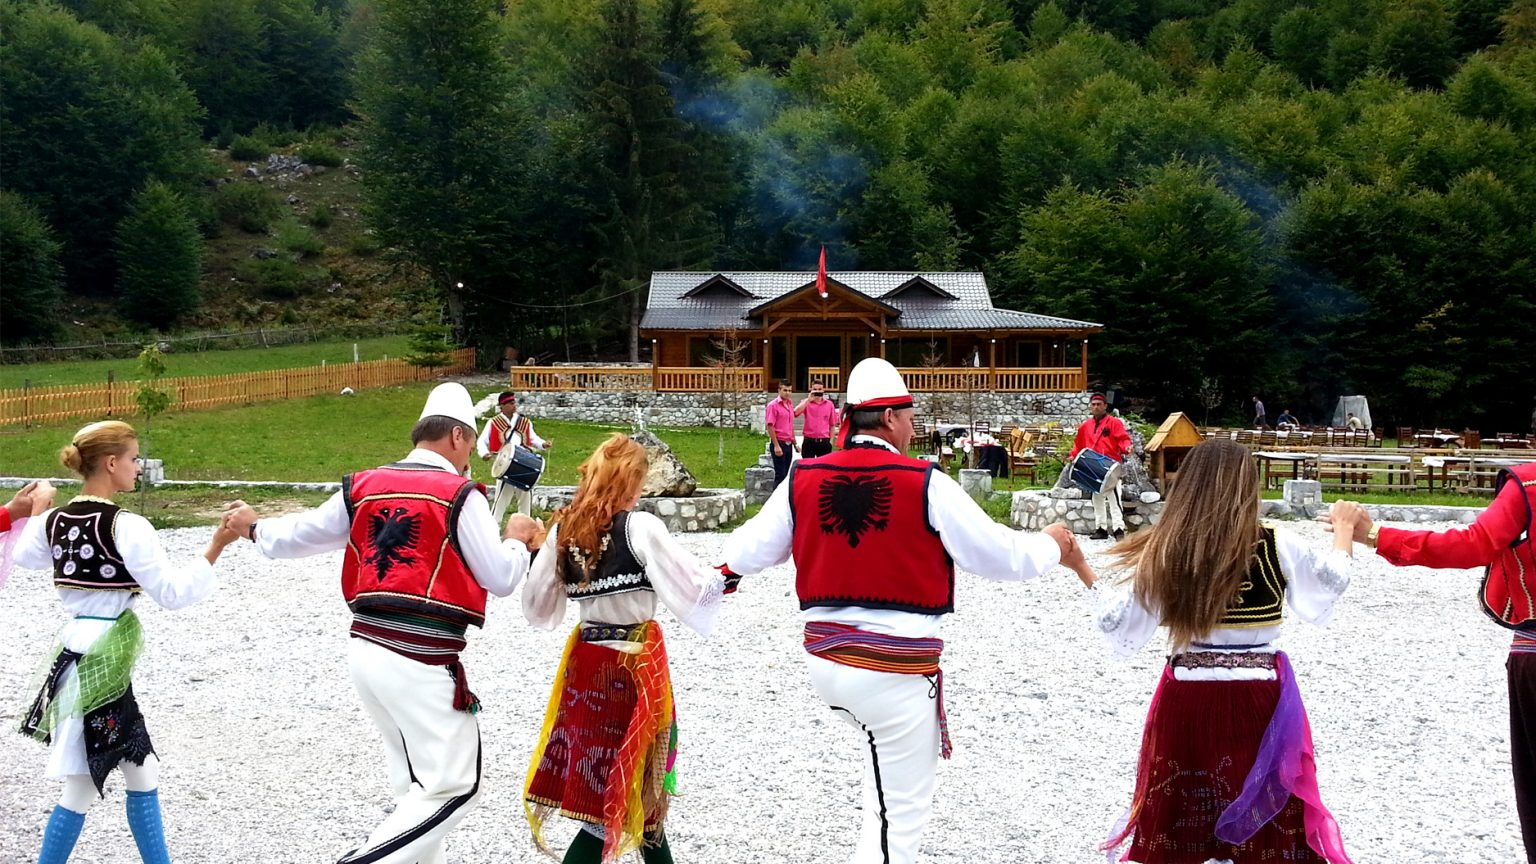 Traditional North Dance in Valbona, photo by IntoAlbania